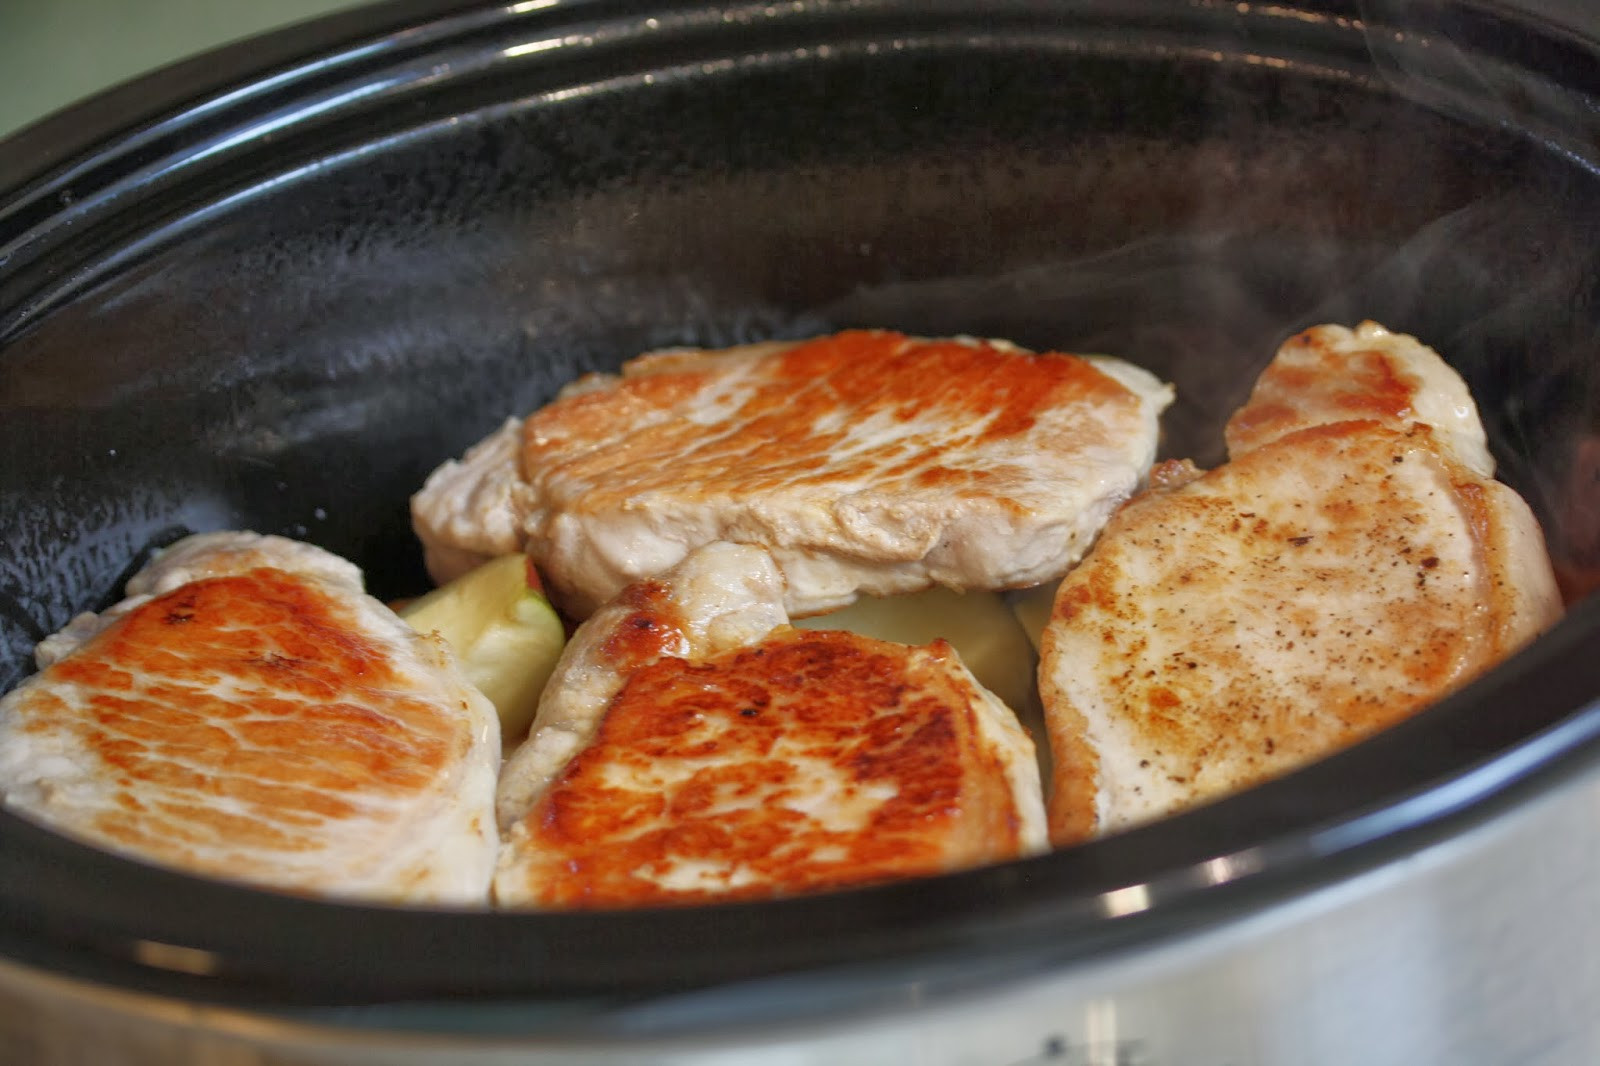 Slow Cooker Pork Chops With Apples  Hot Dinner Happy Home Slow Cooker Pork Chops with Apples